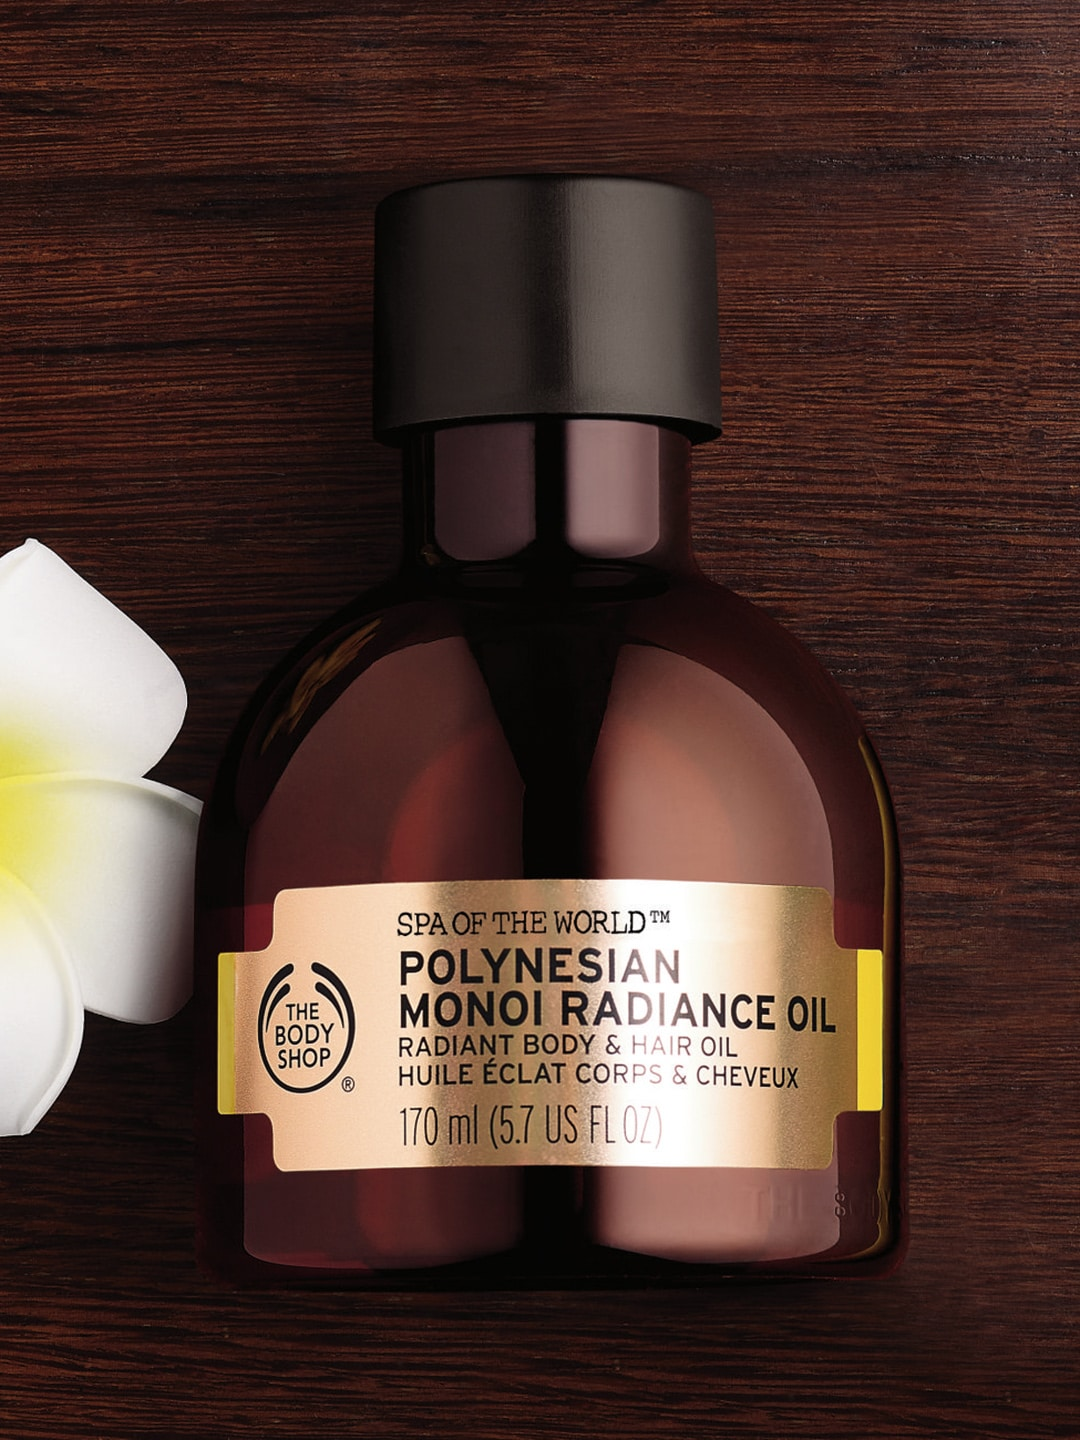 THE BODY SHOP Spa Of The World Polynesian Mono Radiance Oil image